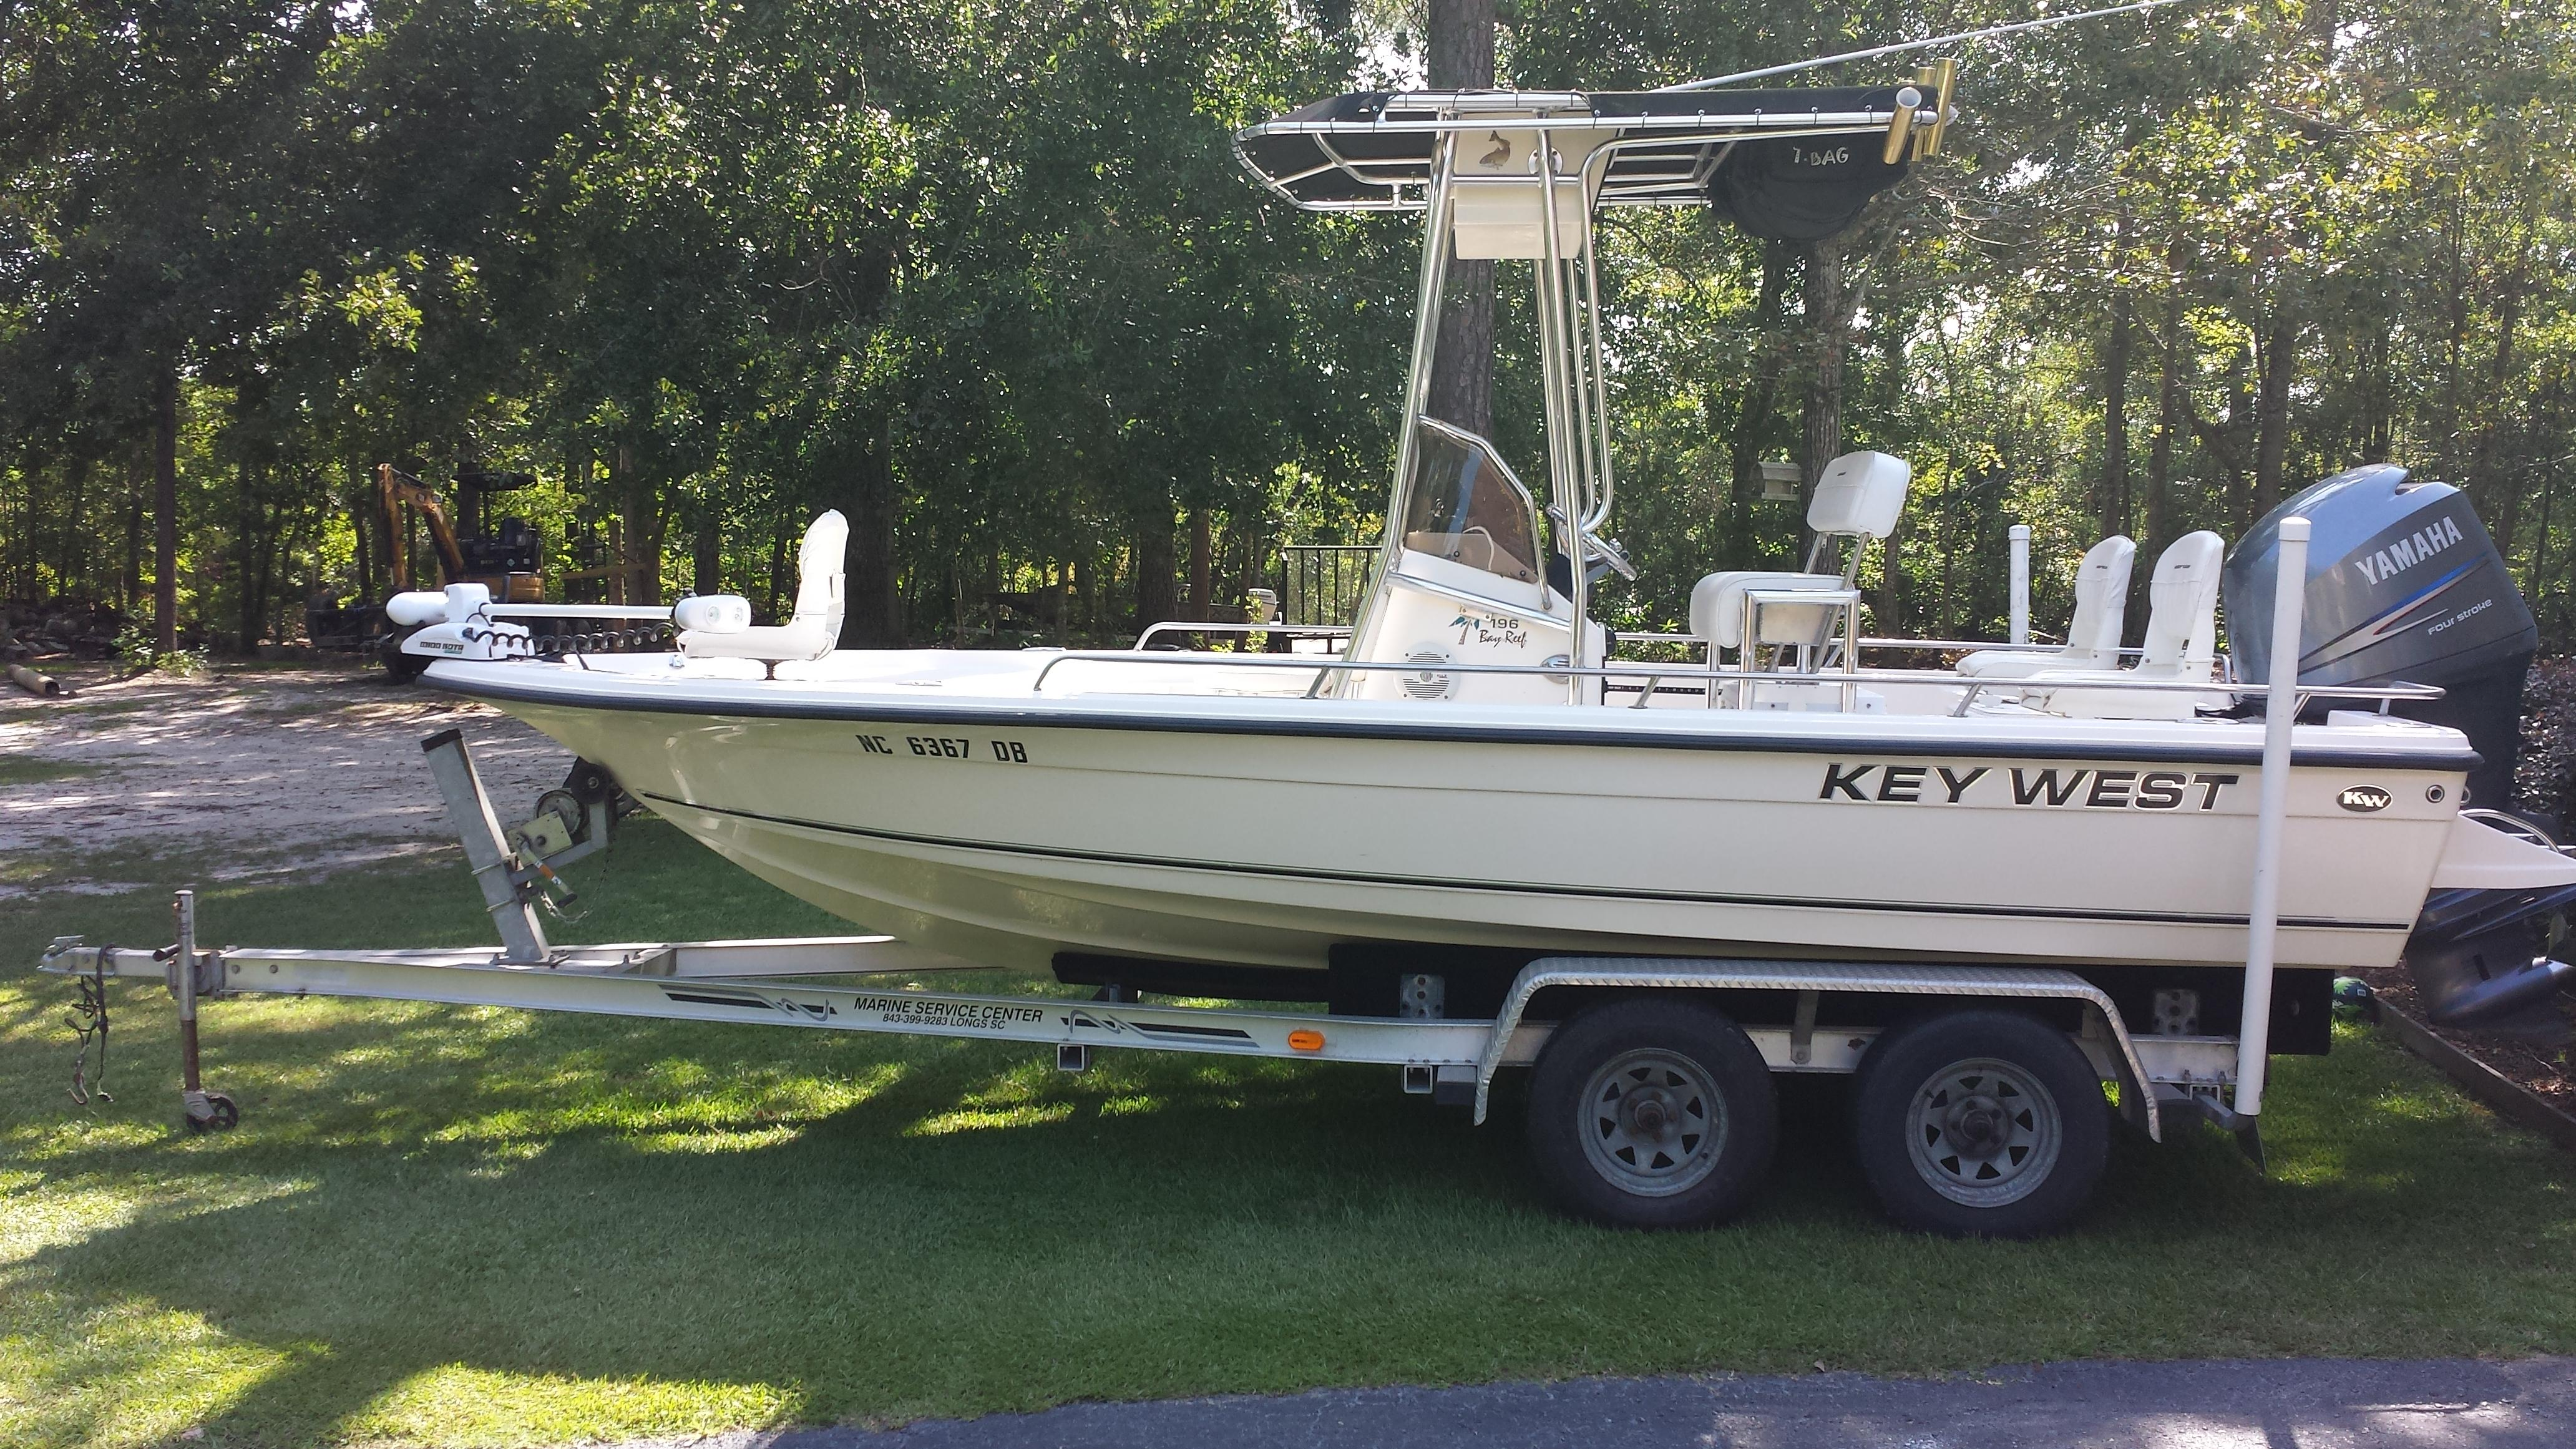 19 Foot Boats for Sale in NC | Boat listings